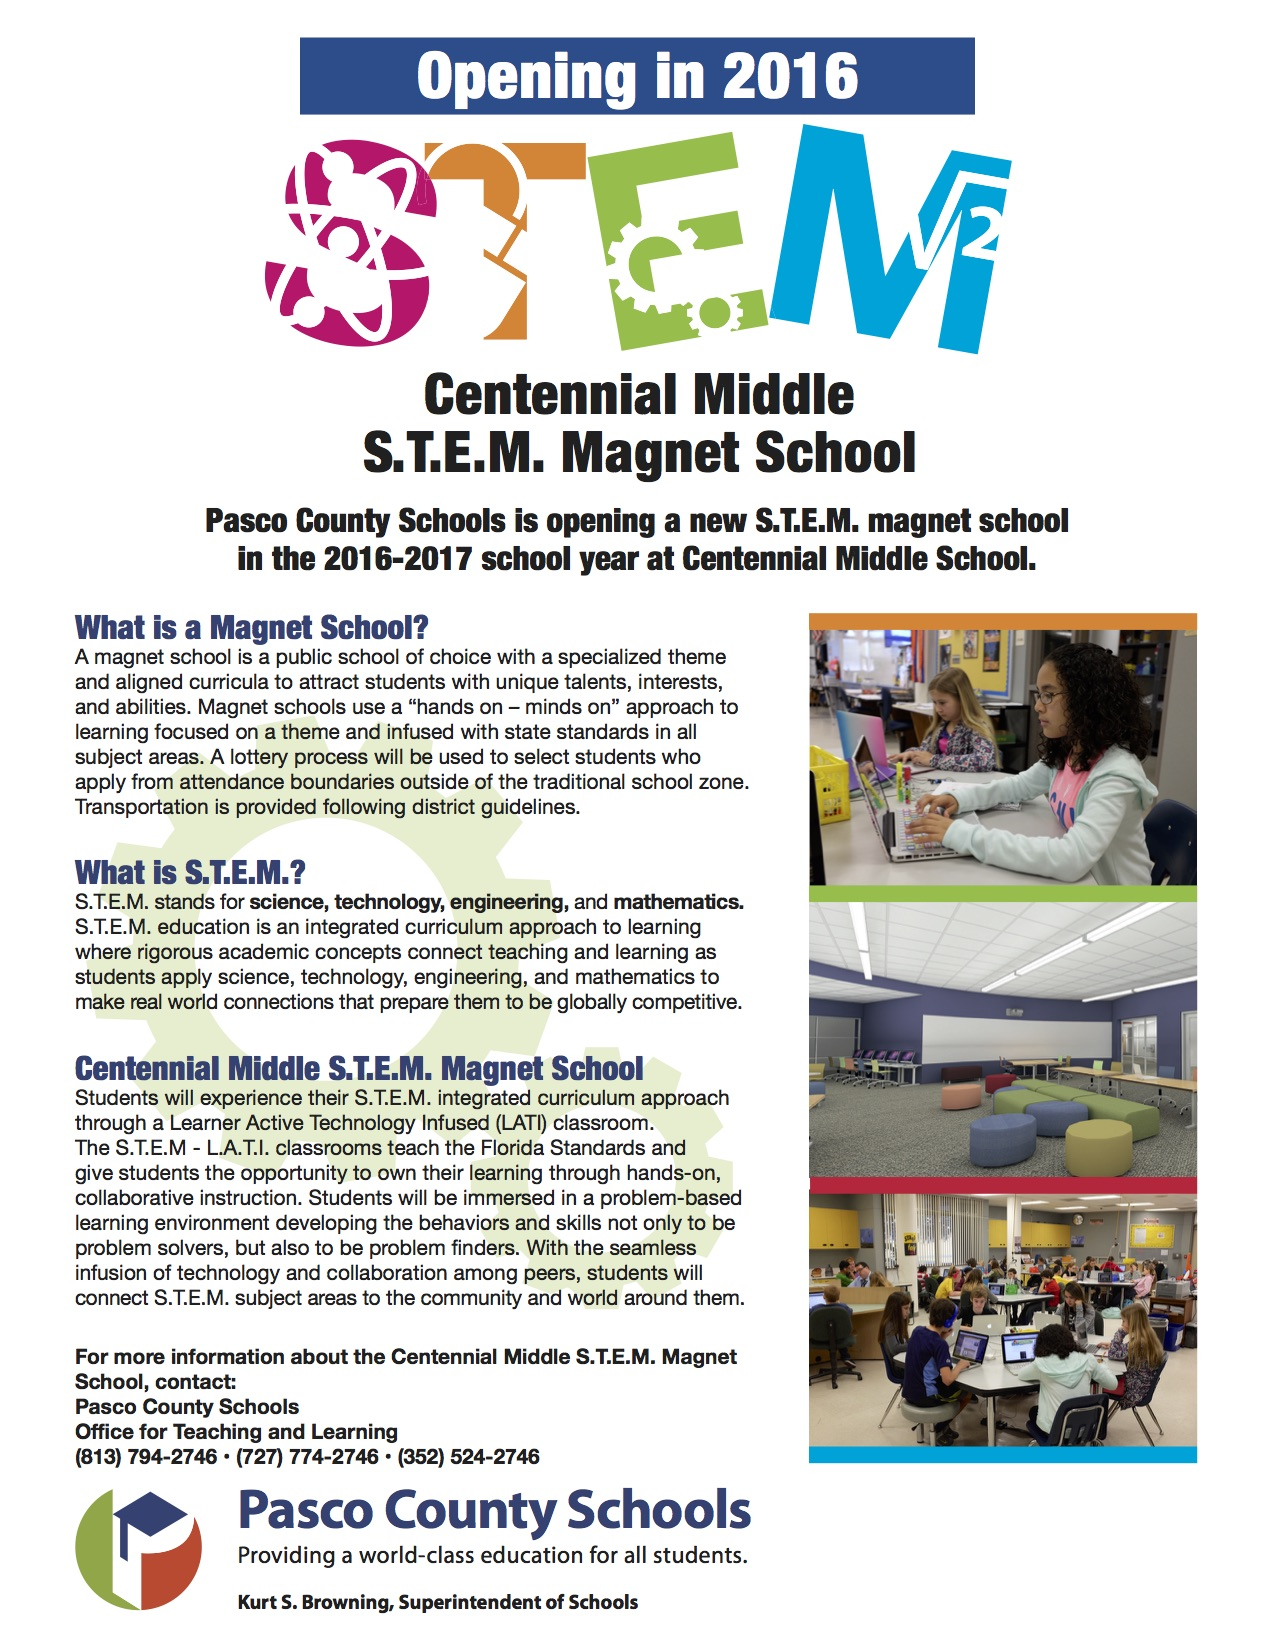 CENMS MAGNET[10]